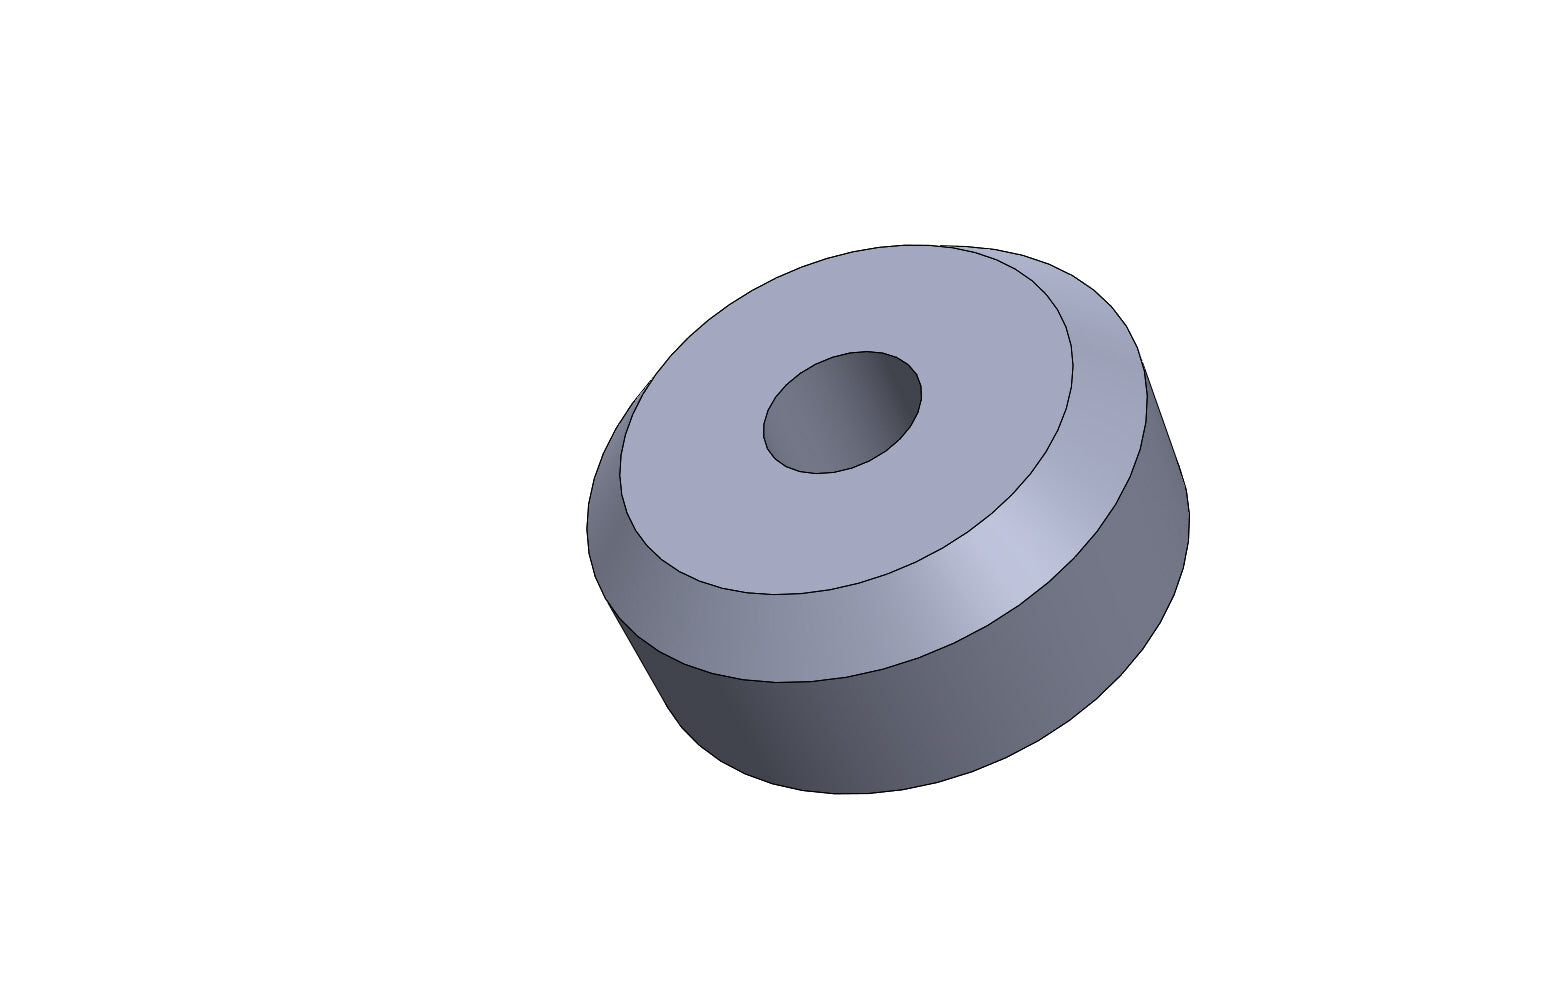 TC6271376A ROUND NUT - King TC8 Spare Part